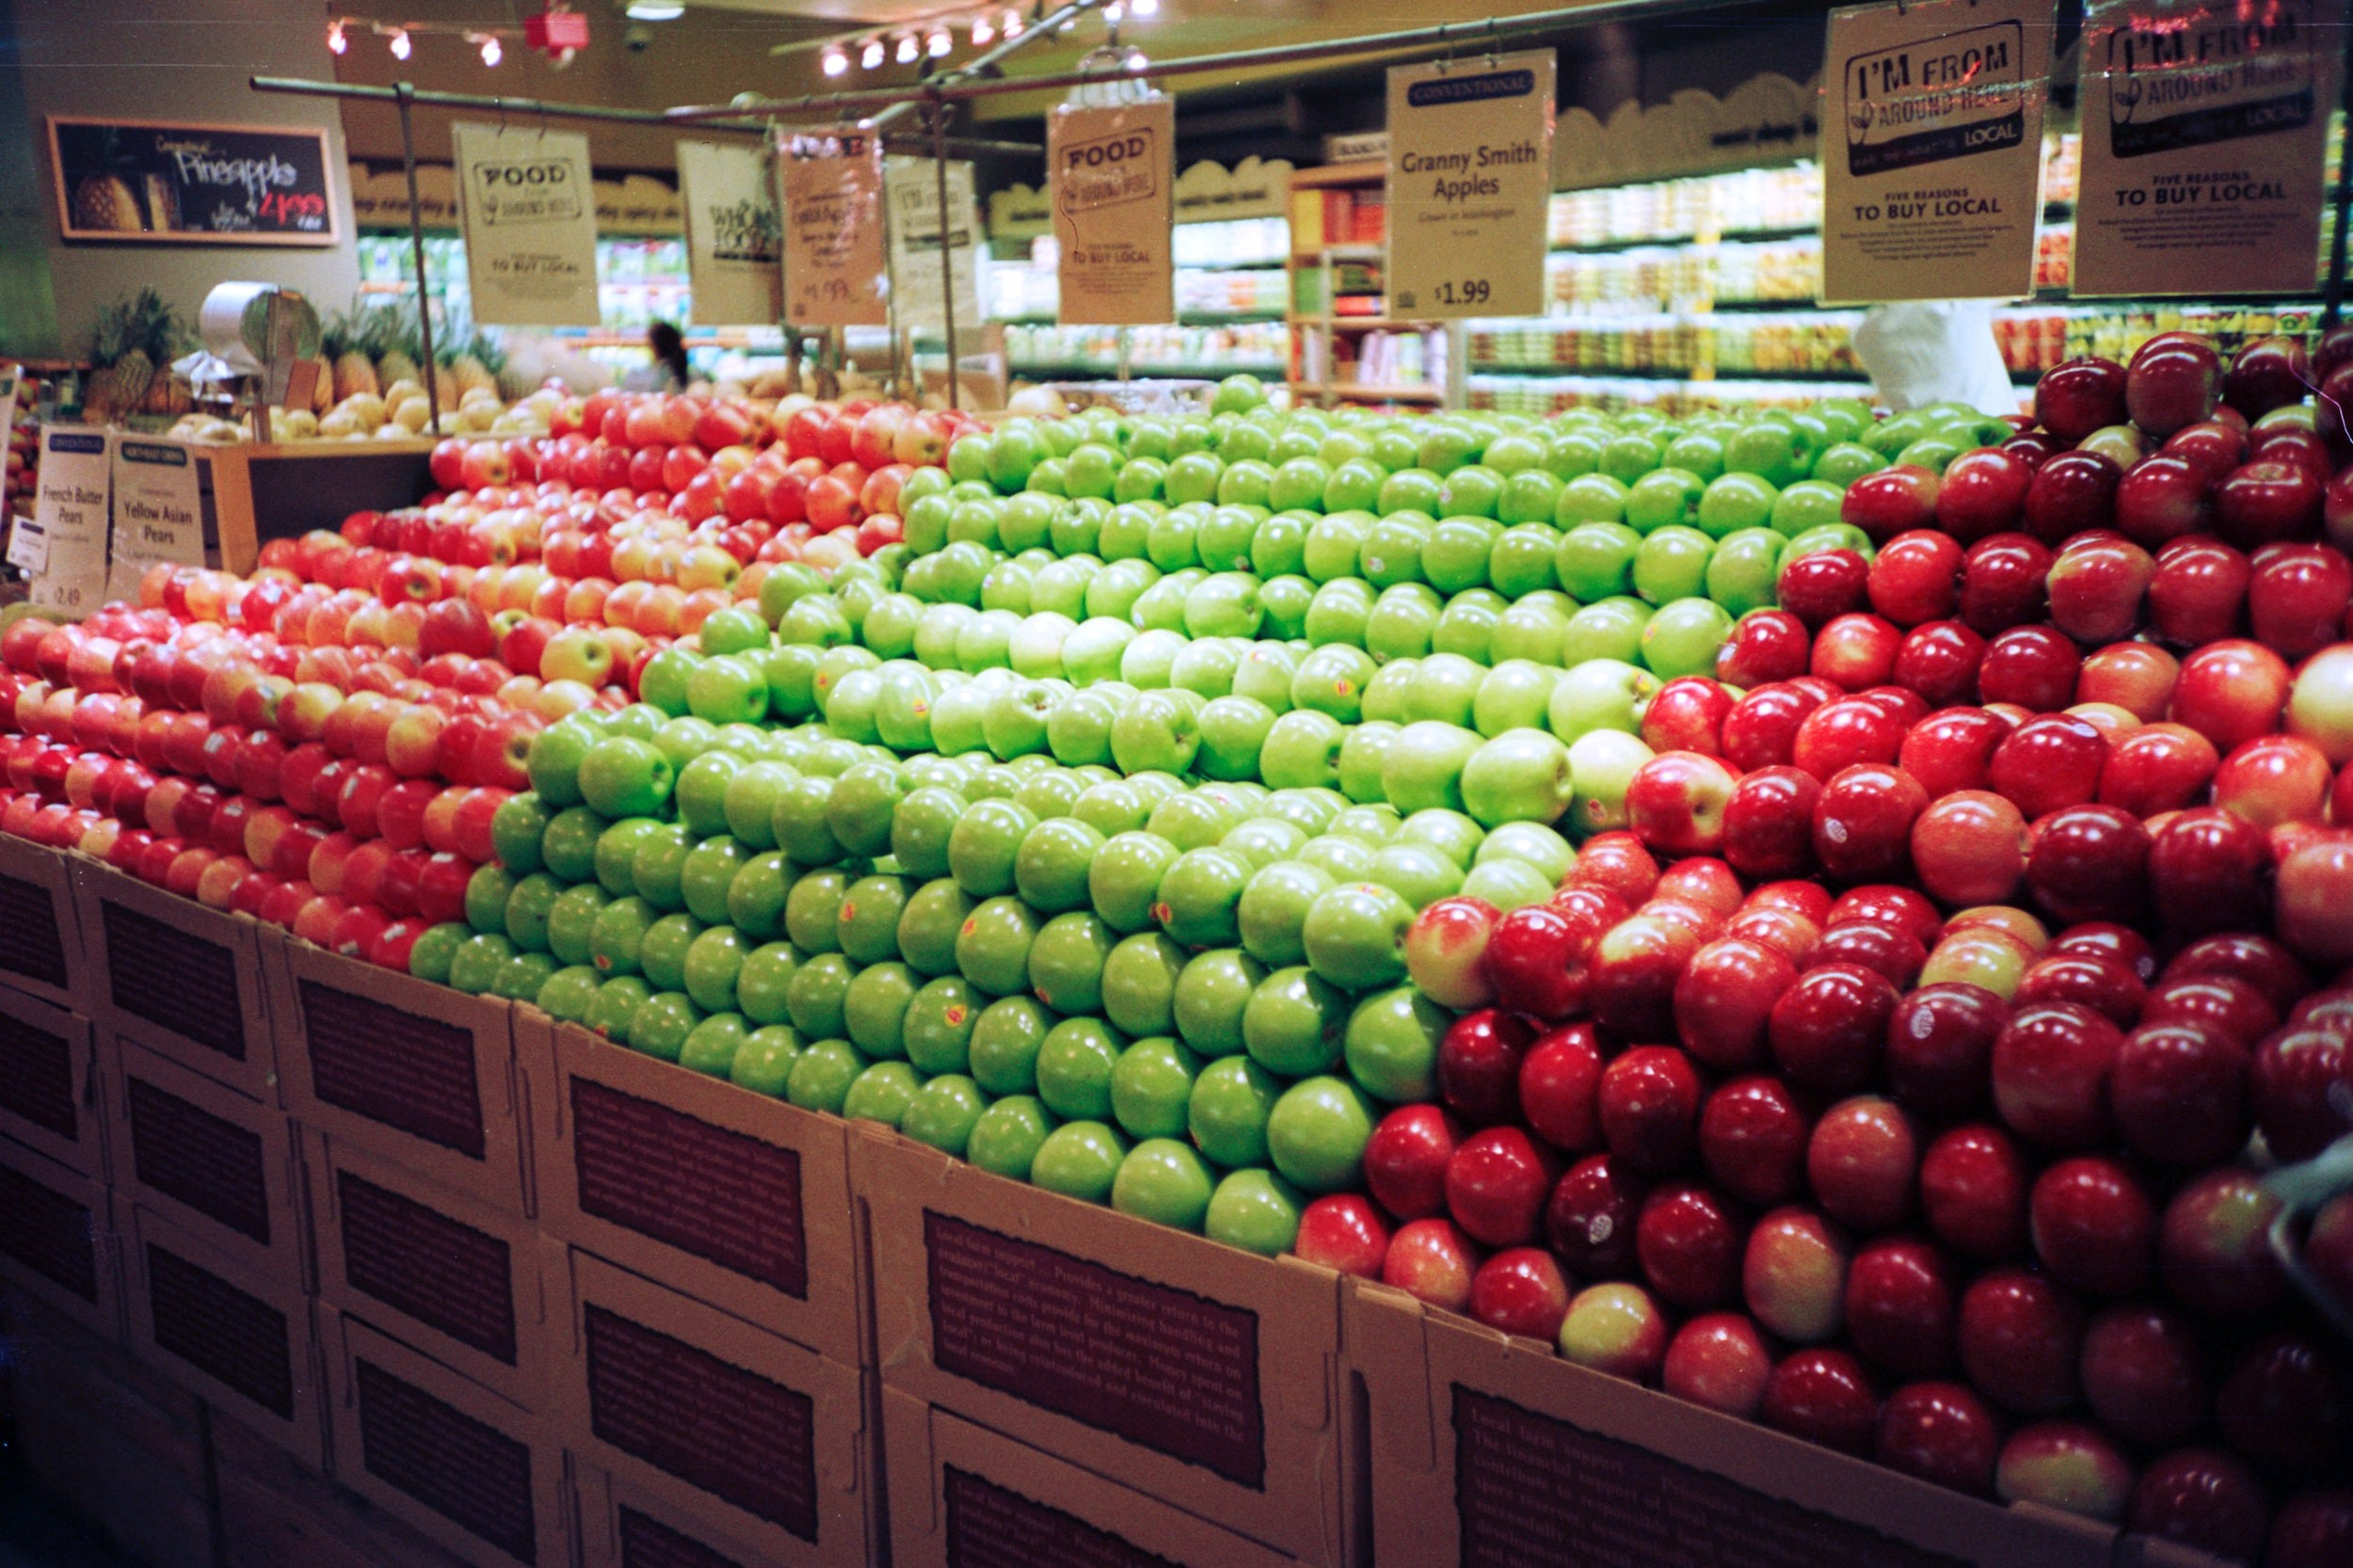 Apples in a store